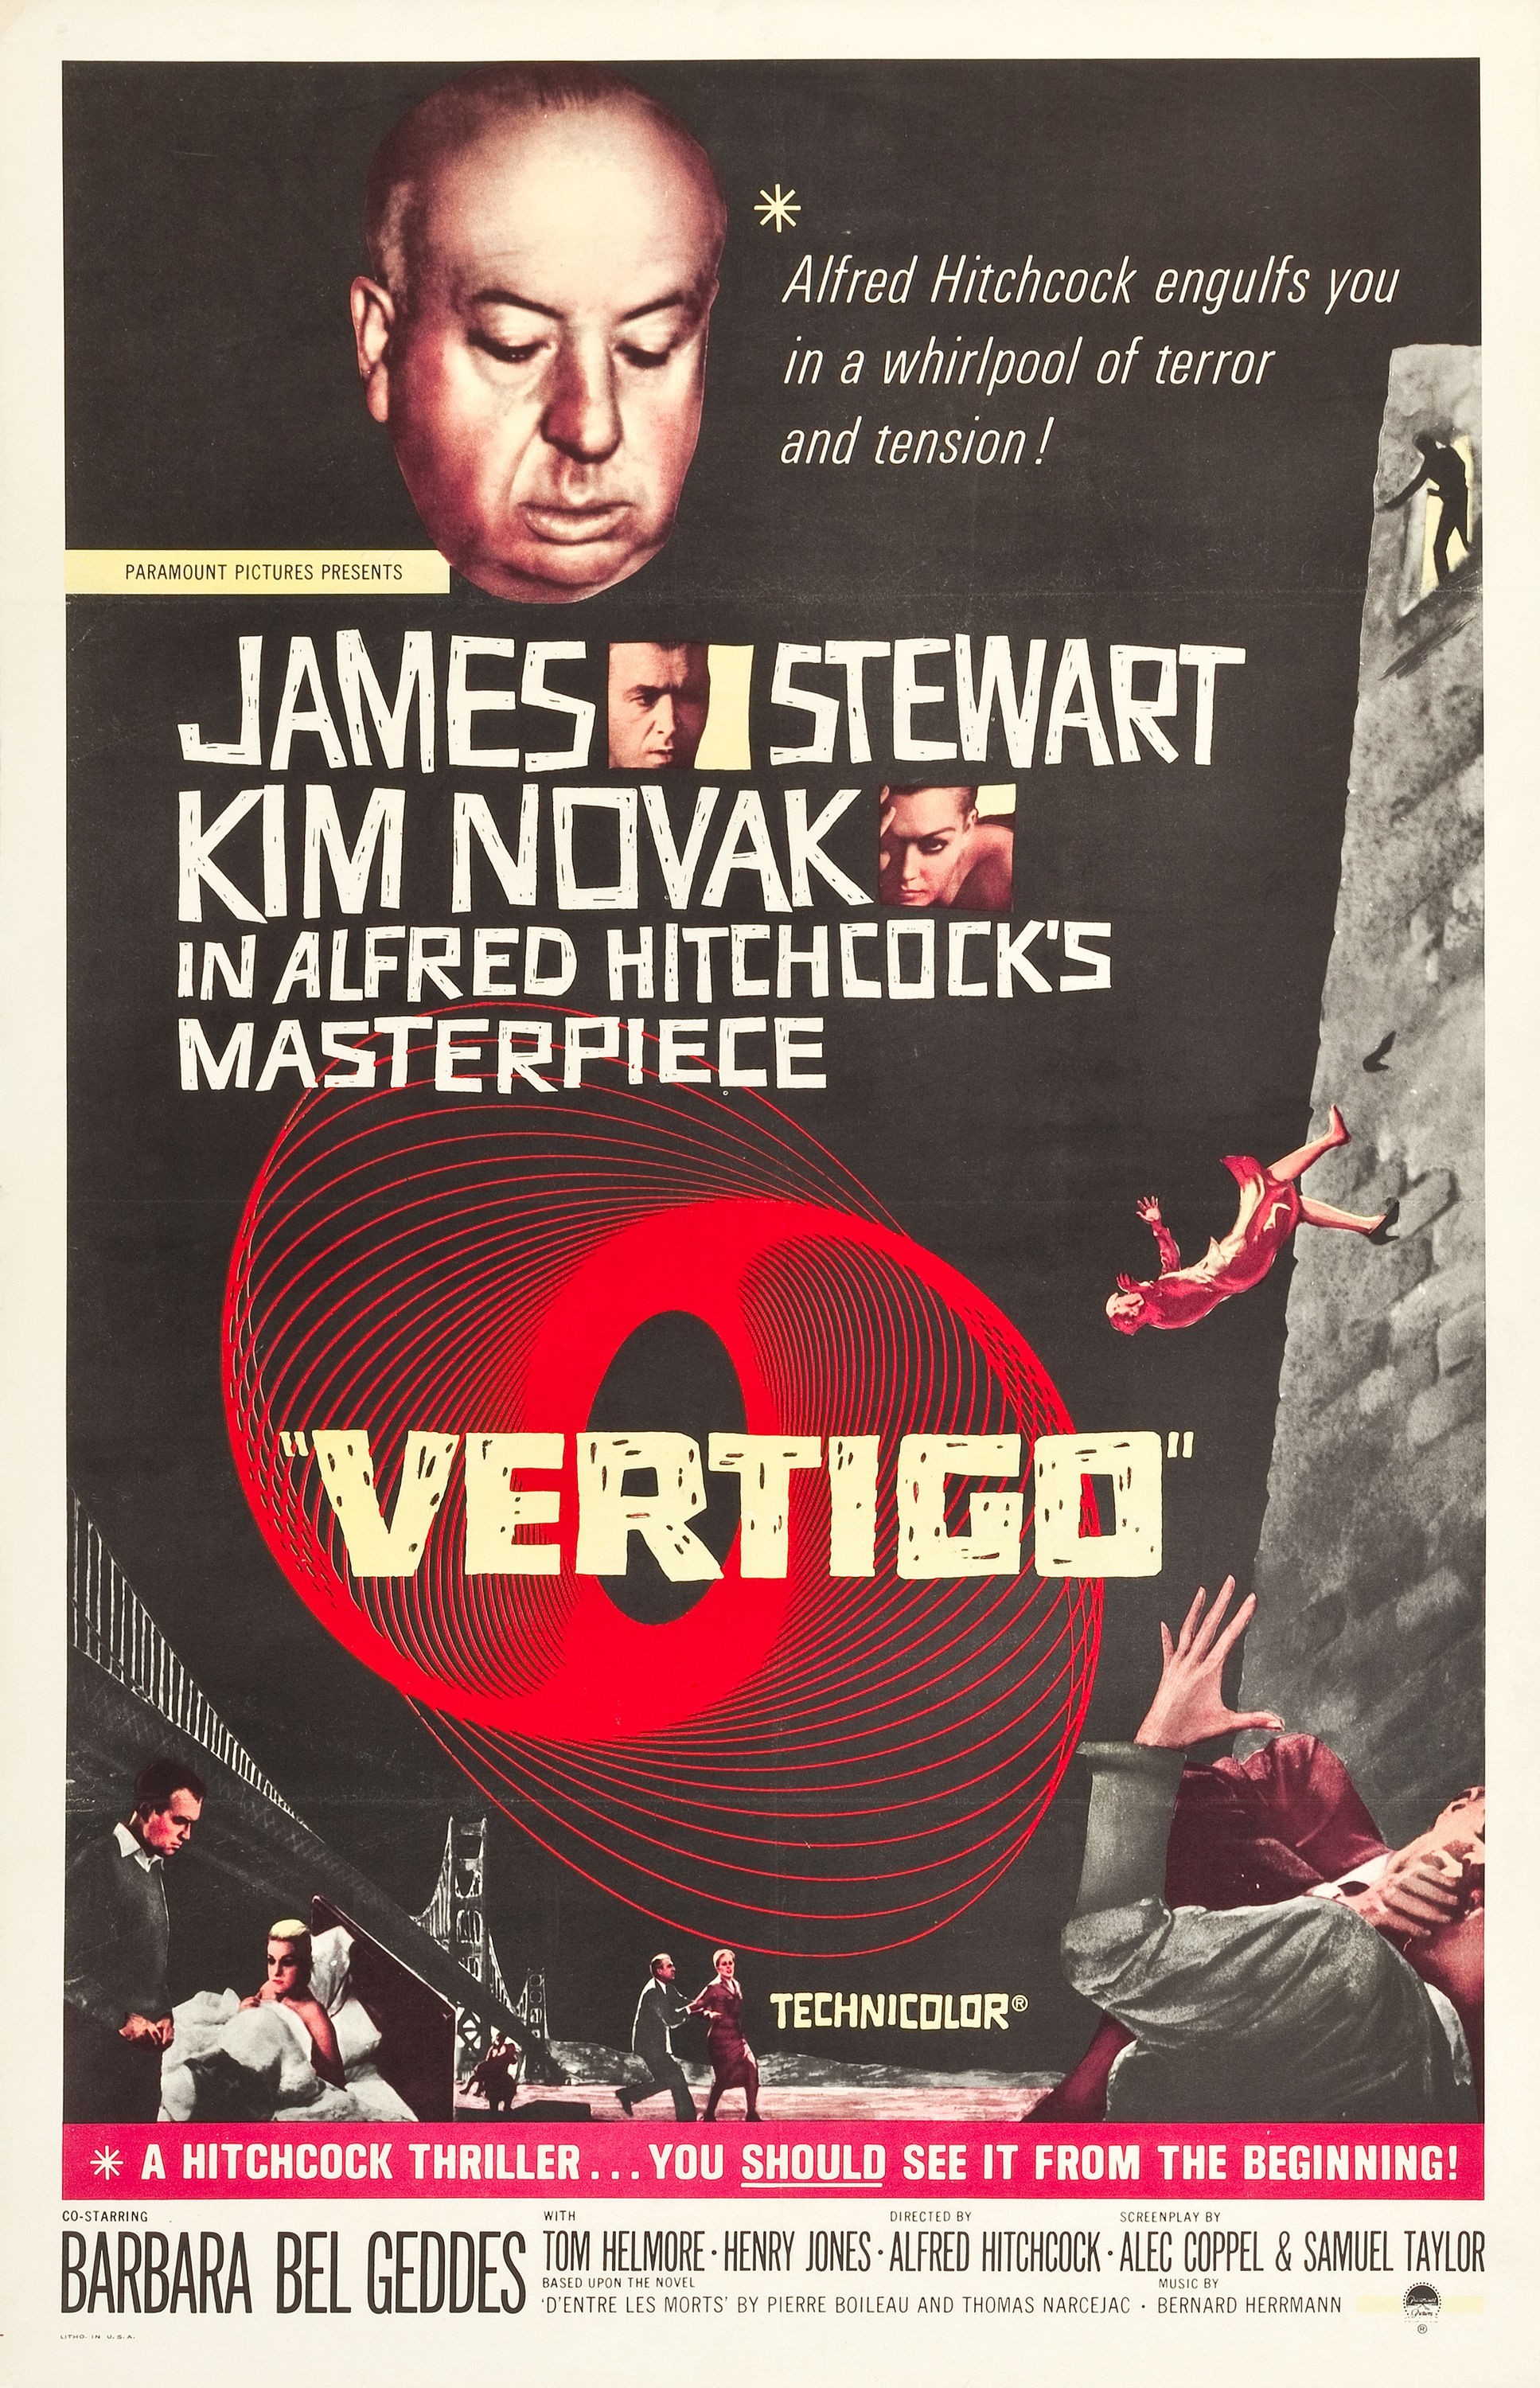 "Vertigo (Paramount, R-1961). International One Sheet (27.75"" X 41.5"").  ""It was on Vertigo that Alfred Hitchcock invented the famous ""dolly zoom"" technique that gave the thrilling impression of James Stewart's fear of heights, a camera trick that has become part of the grammar of the cinema, including being famously used by Steven Spielberg in Jaws. The classic design by Saul Bass, Kim Novak being thrown from the tower, James Stewart having a psychological breakdown, and, best of all, Alfred Hitchcock's portrait are featured on this early reissue poster. Restoration has addressed two small tears in the left border, fold wear, a chip in the upper left, corner pinholes in the borders, and creasing near the folds in the left and right border. Very Fine- on Linen. Estimate: $3,000 - $6,000"" "" —H.A."